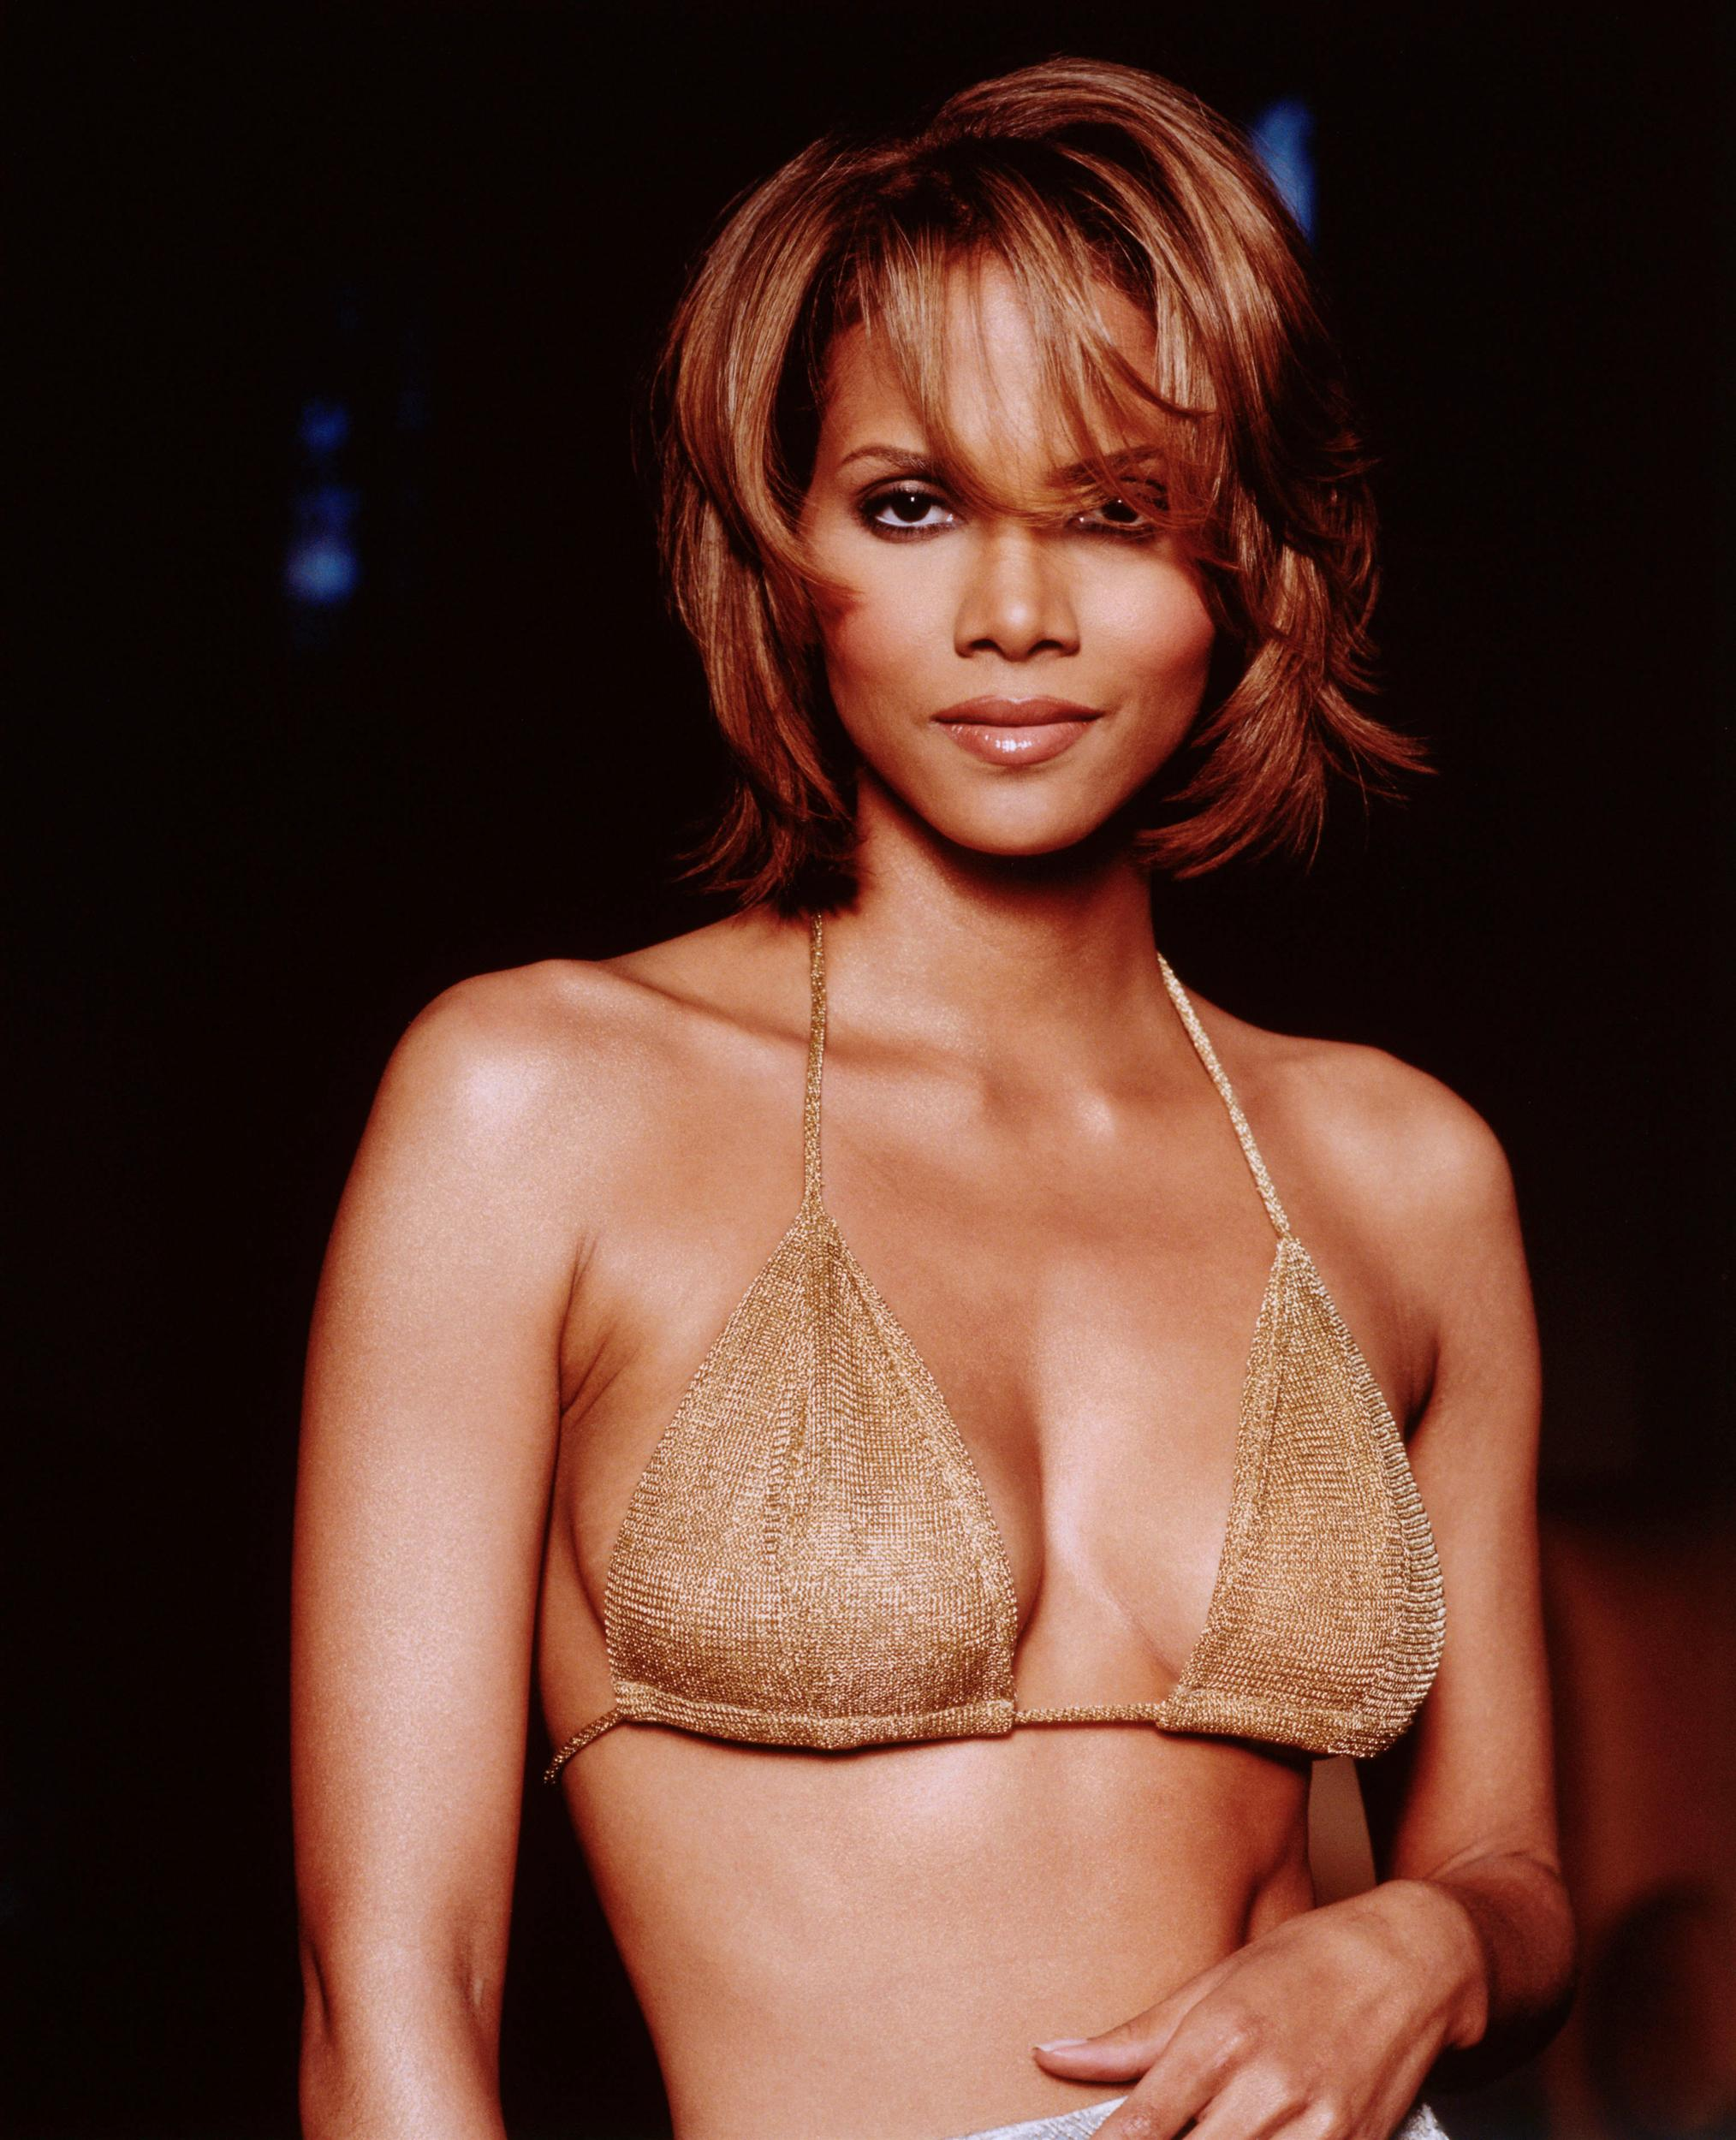 nude pictures of halle berry  600562